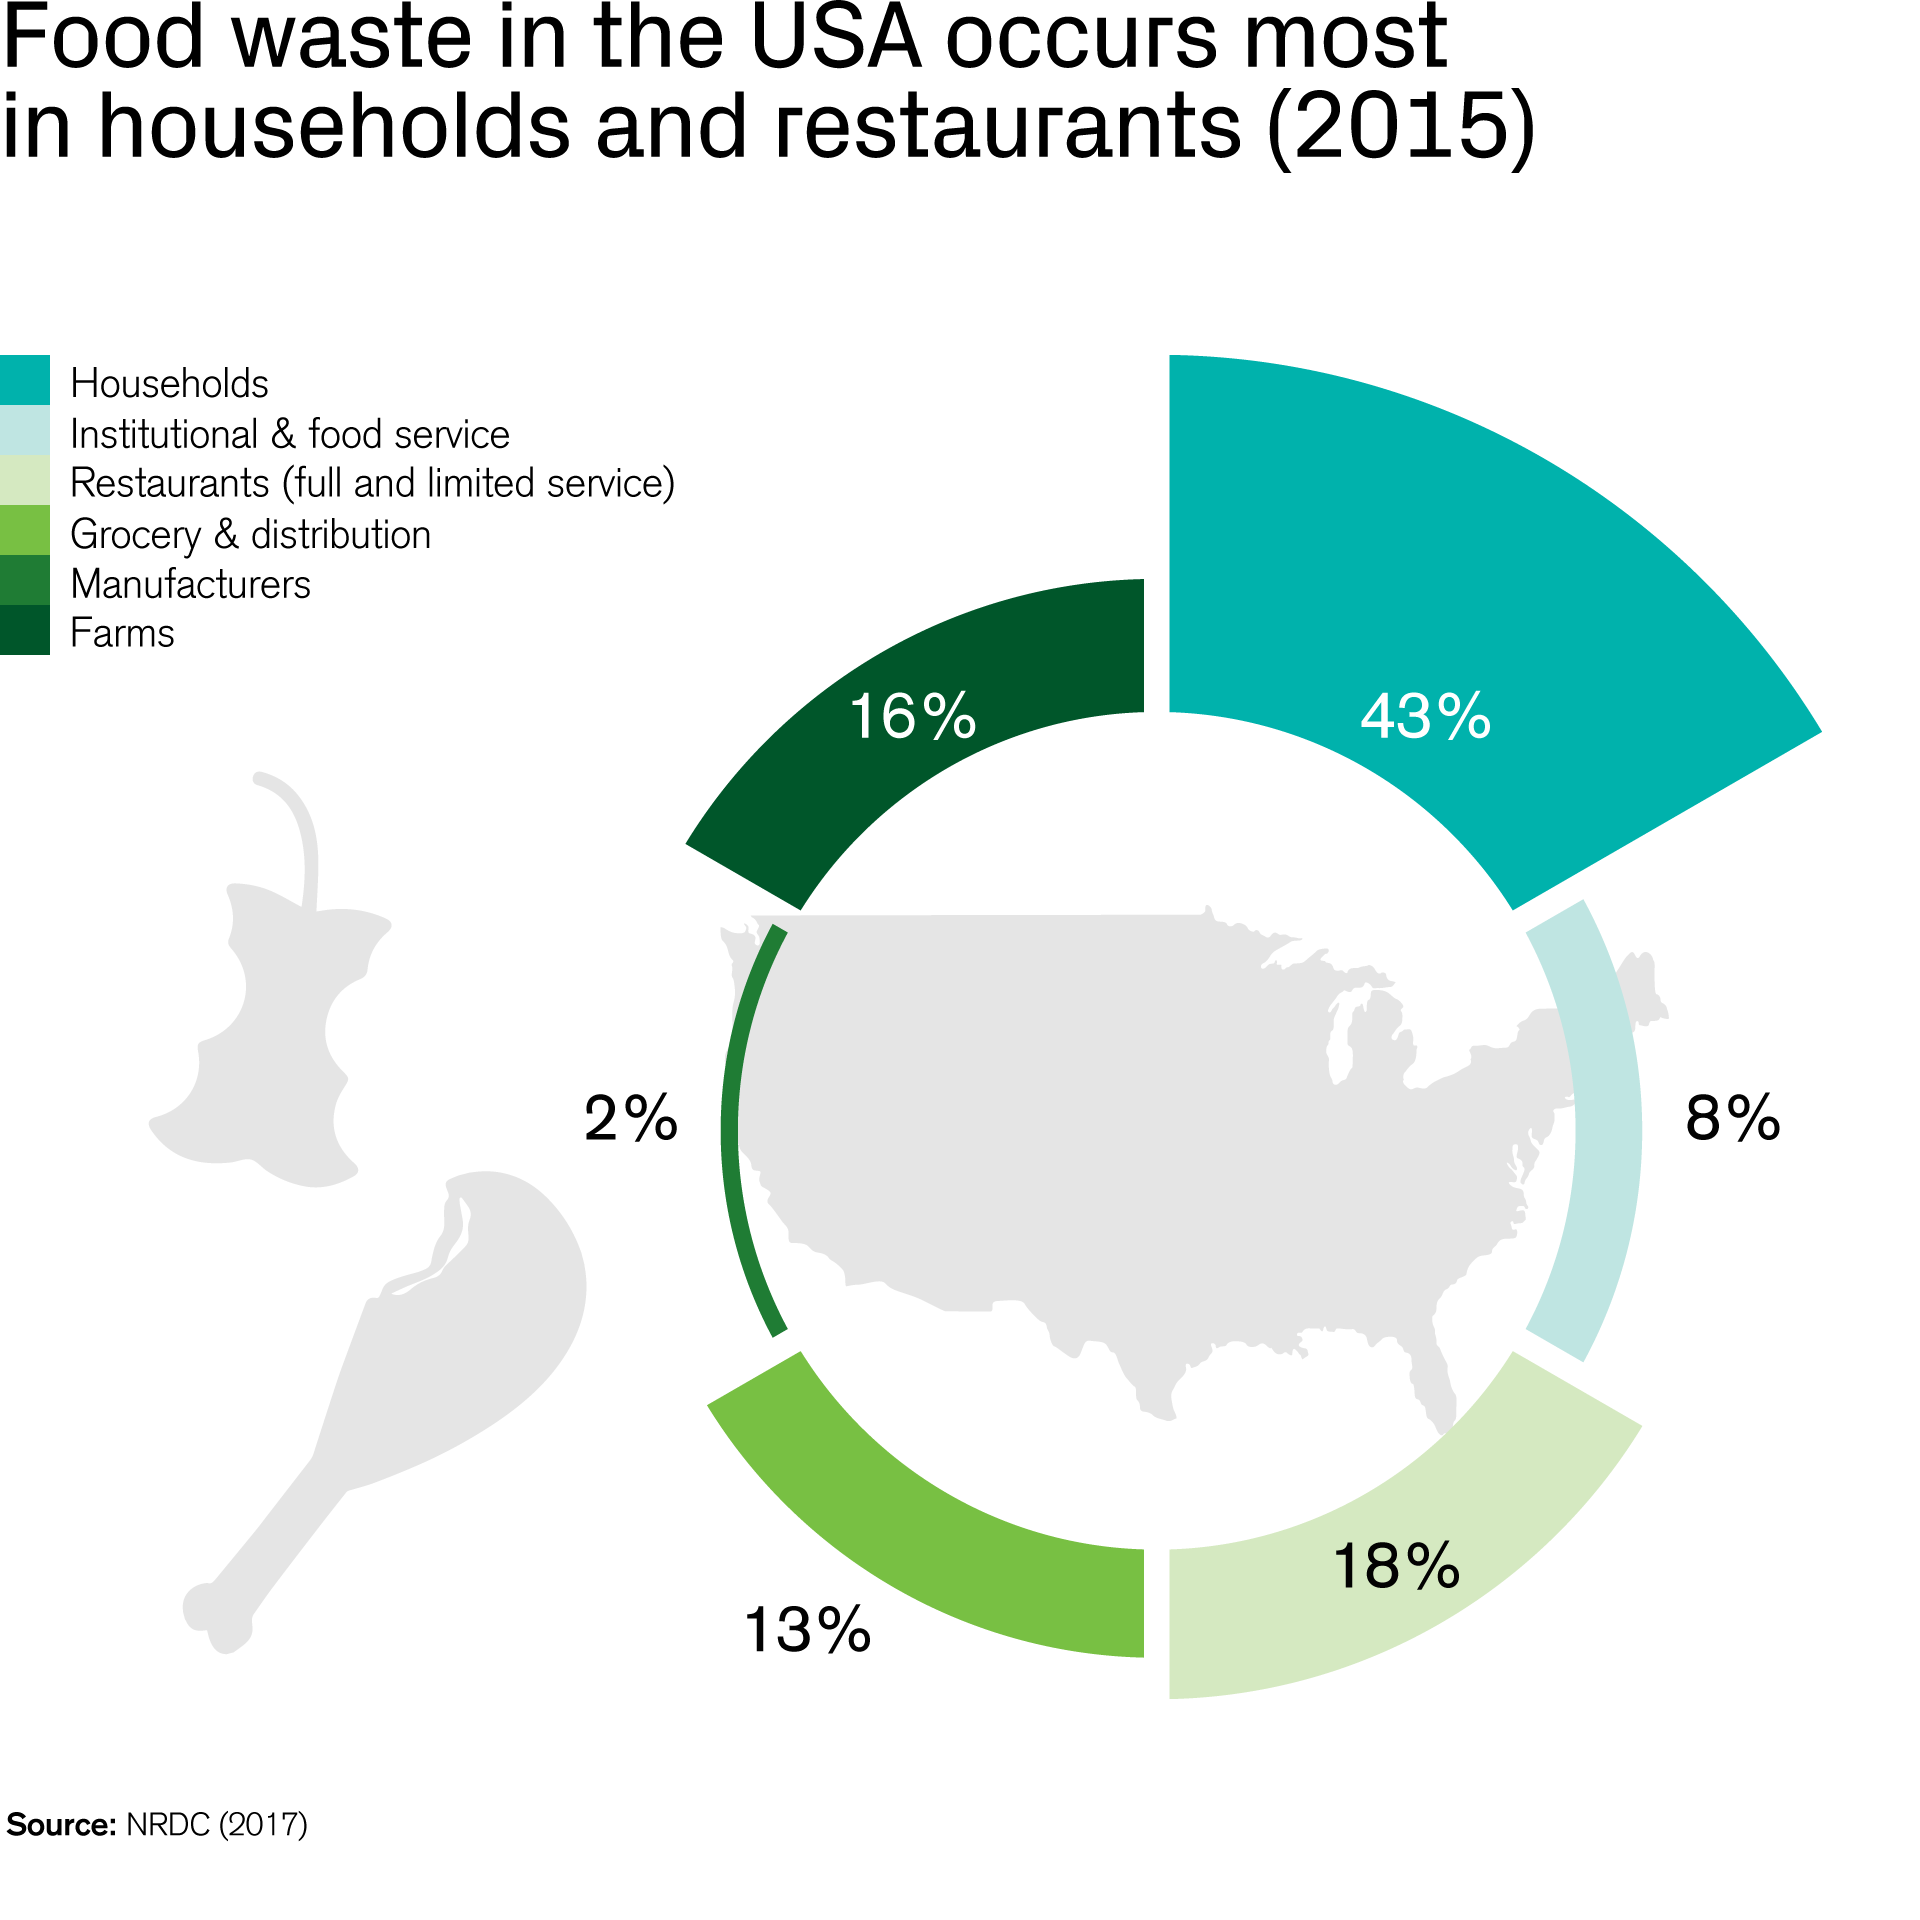 Food waste in the USA